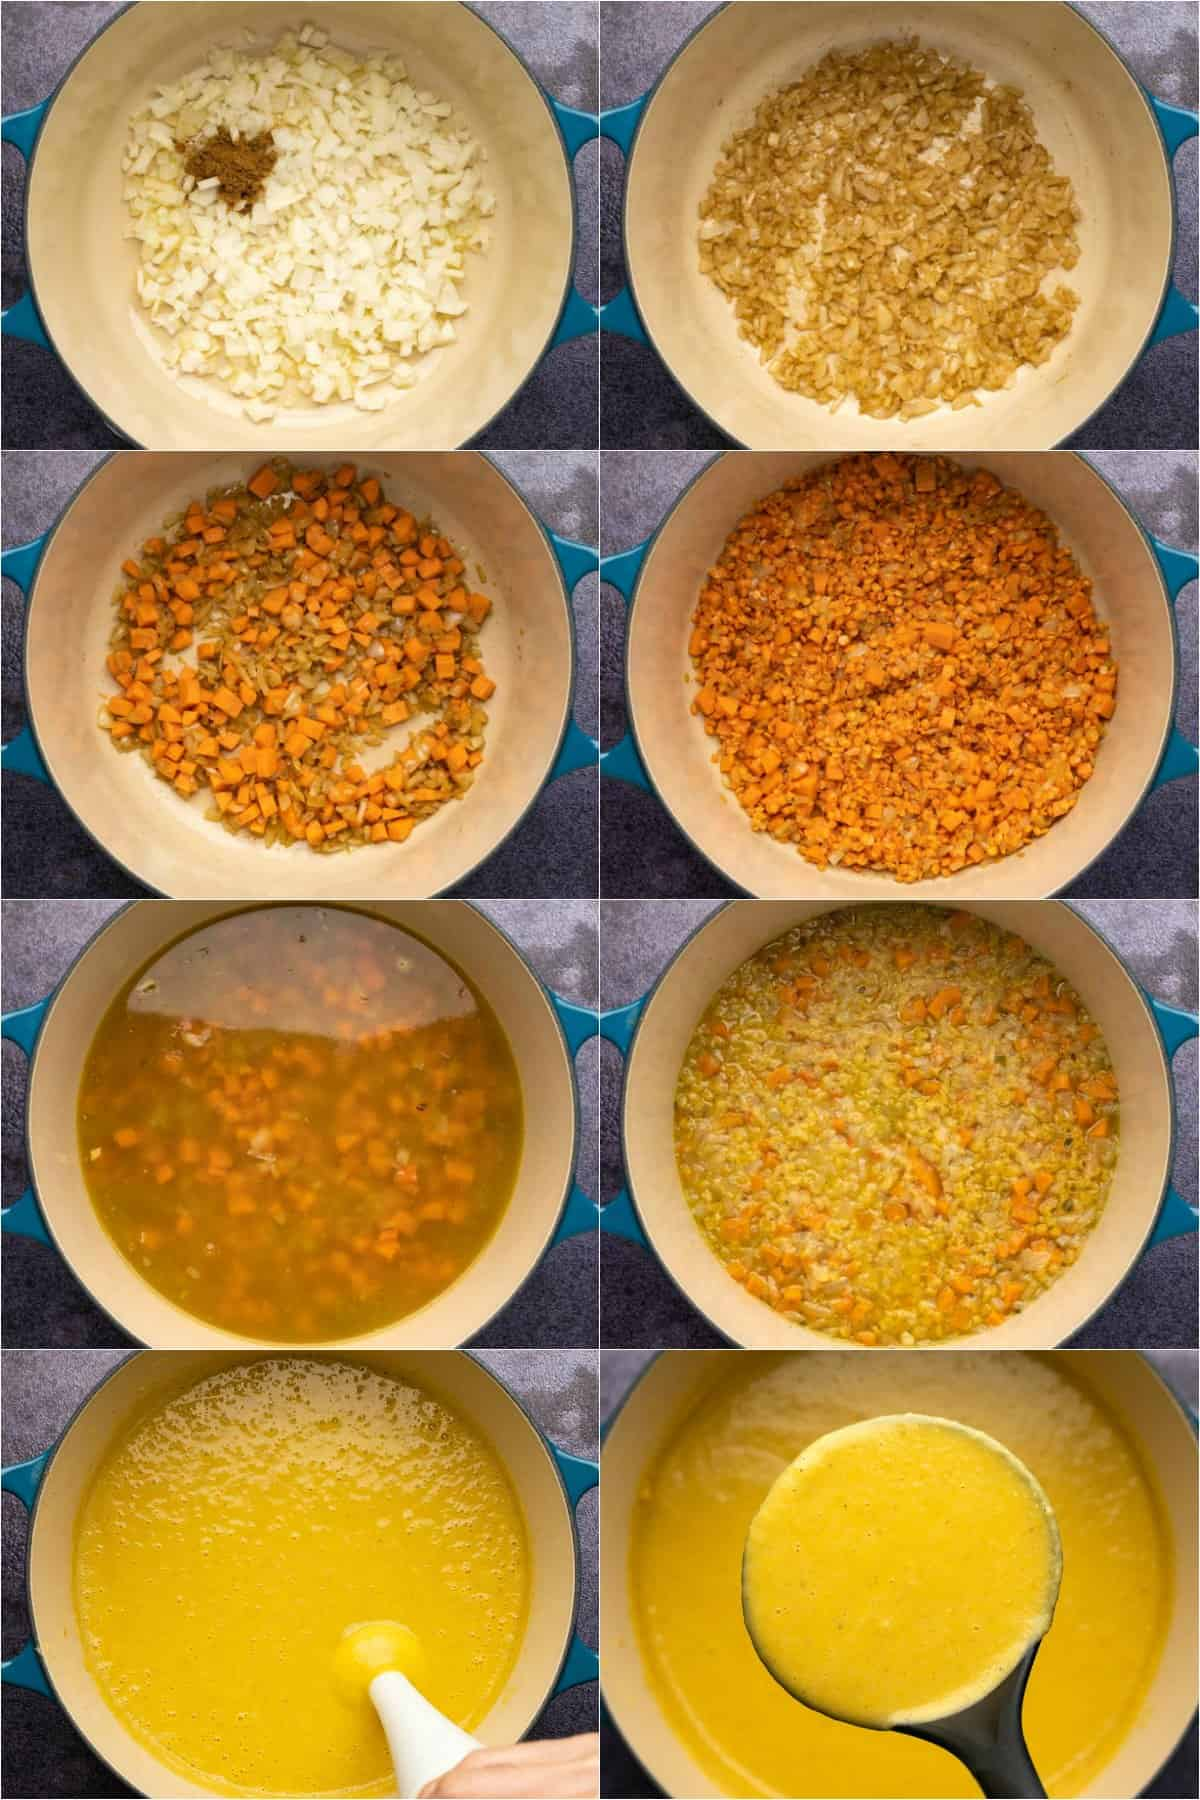 Step by step process photo collage of making middle eastern lentil soup.